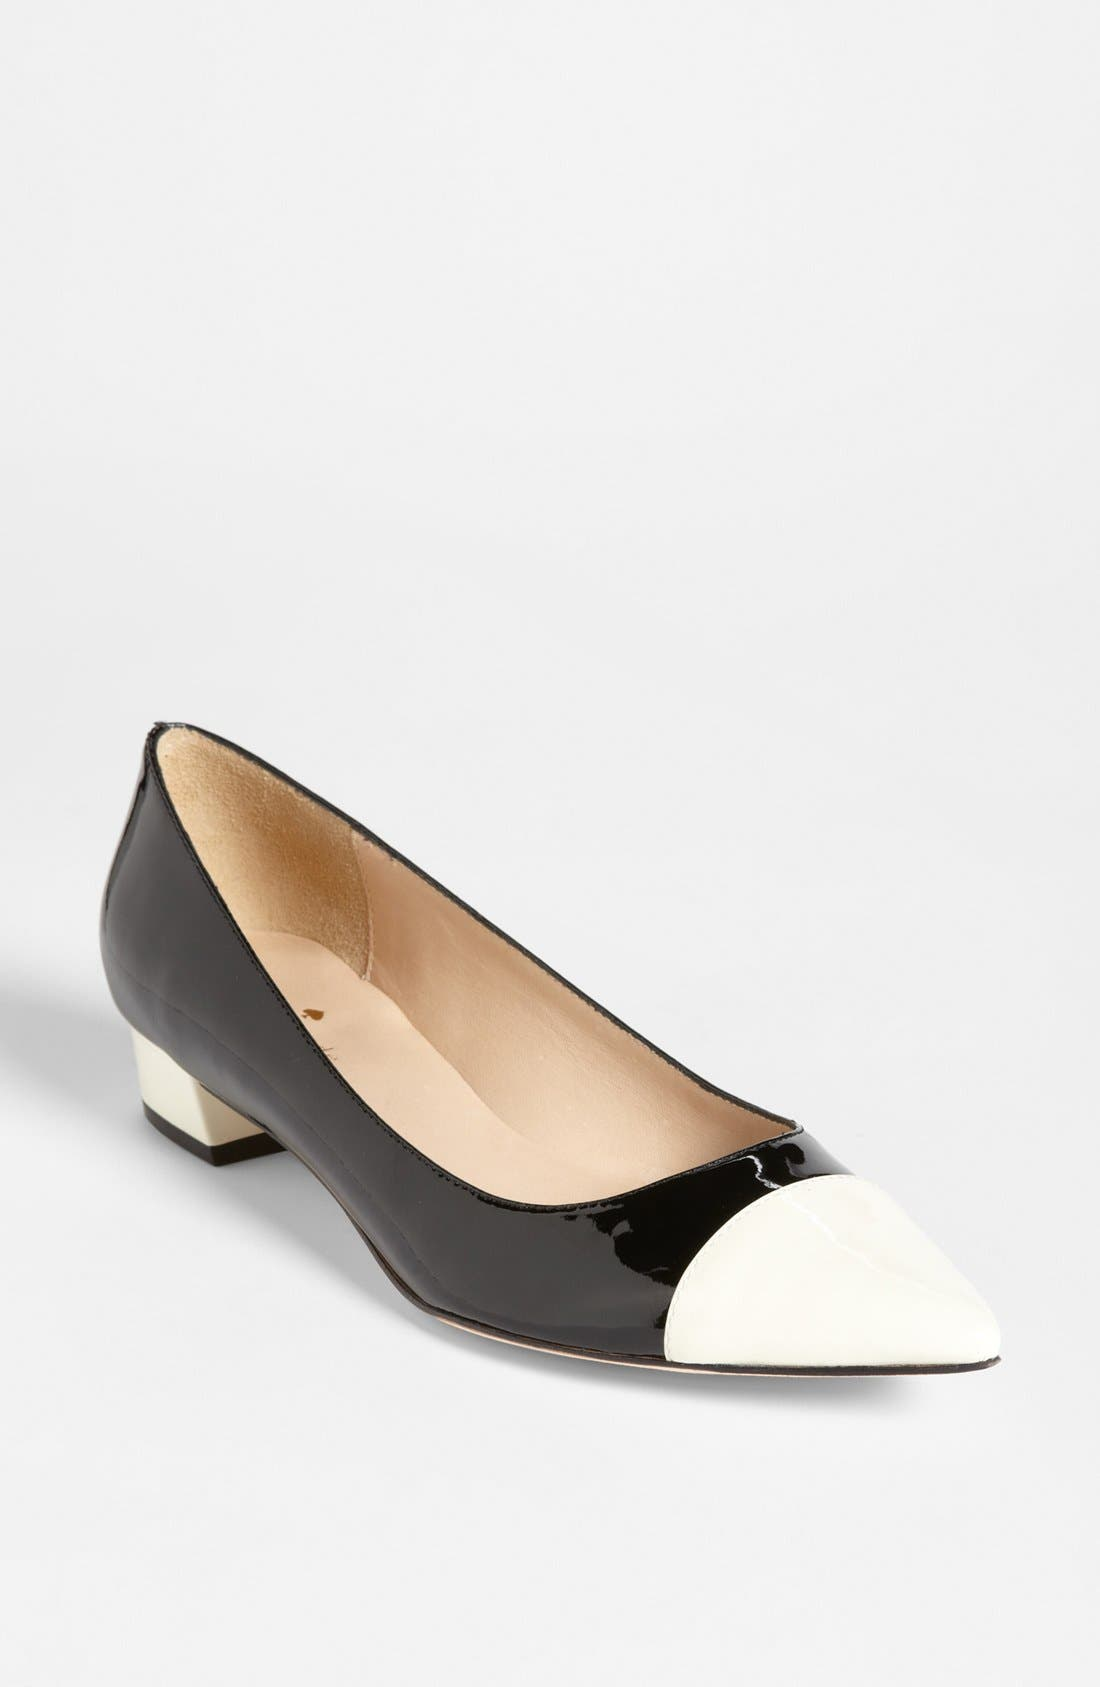 Main Image - kate spade new york 'adie' pump